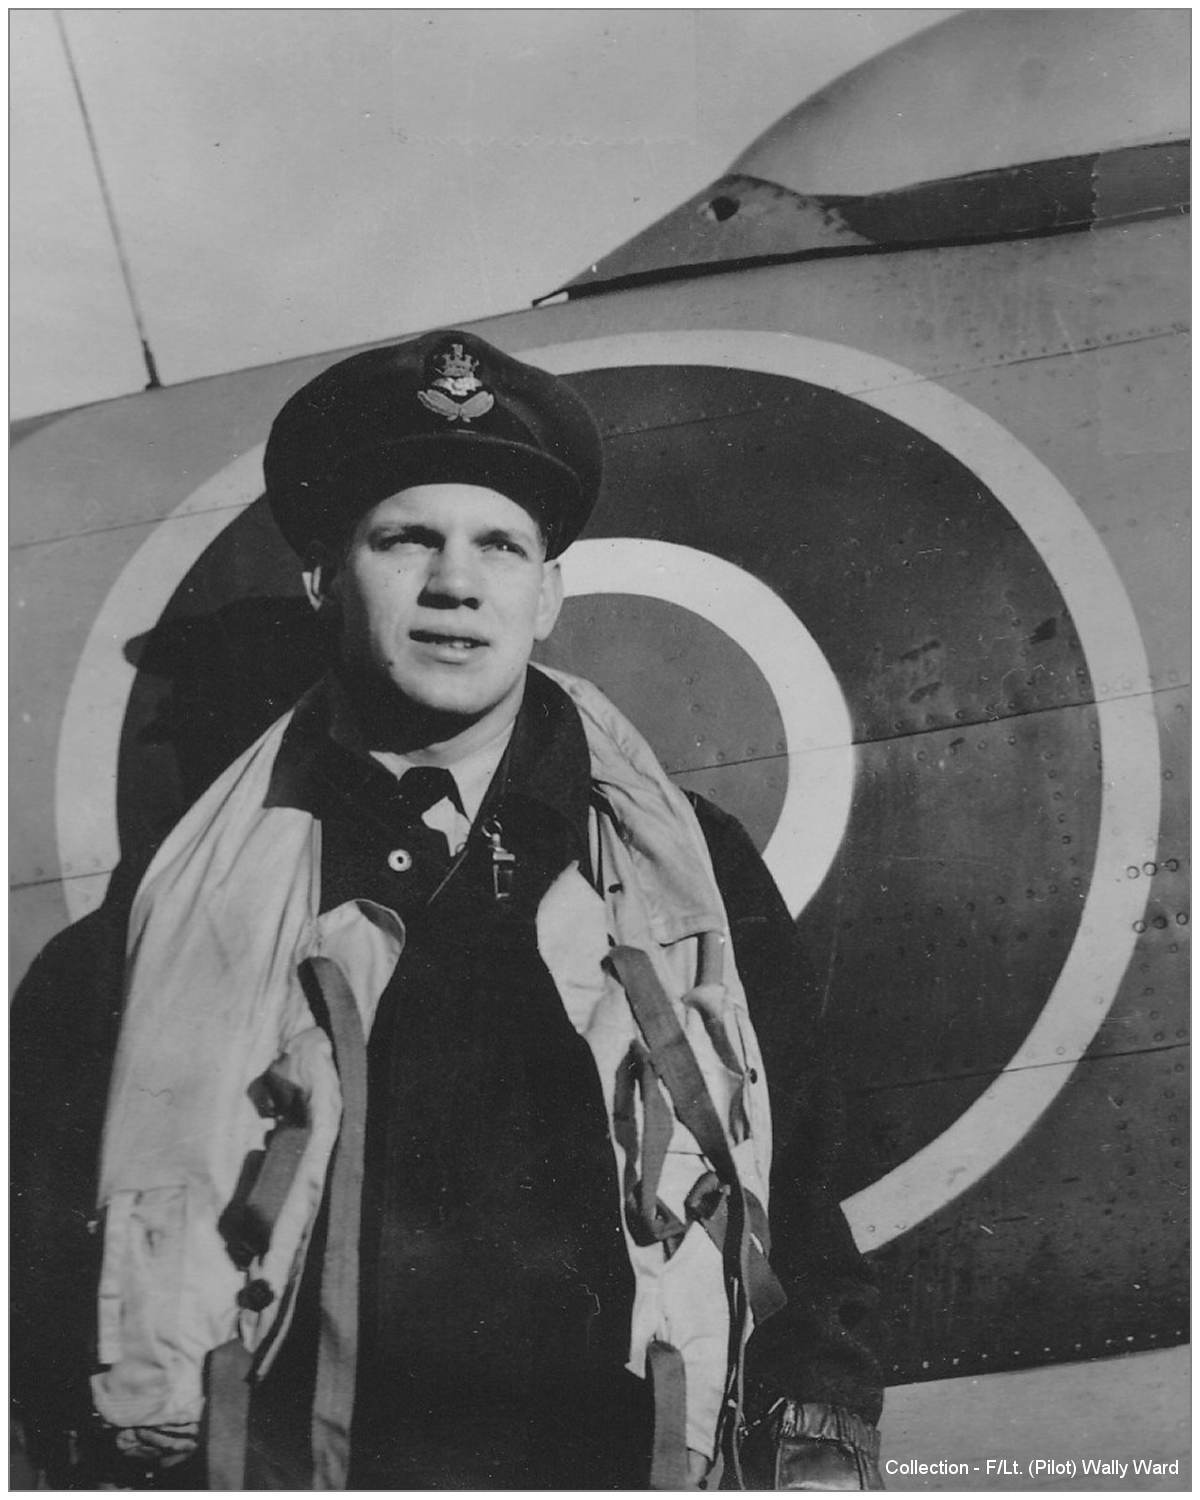 J/26406 - F/O. Ronald 'Ron' William Doidge - RCAF - Collection - F/Lt. (Pilot) Wally Ward - via Bill Eull